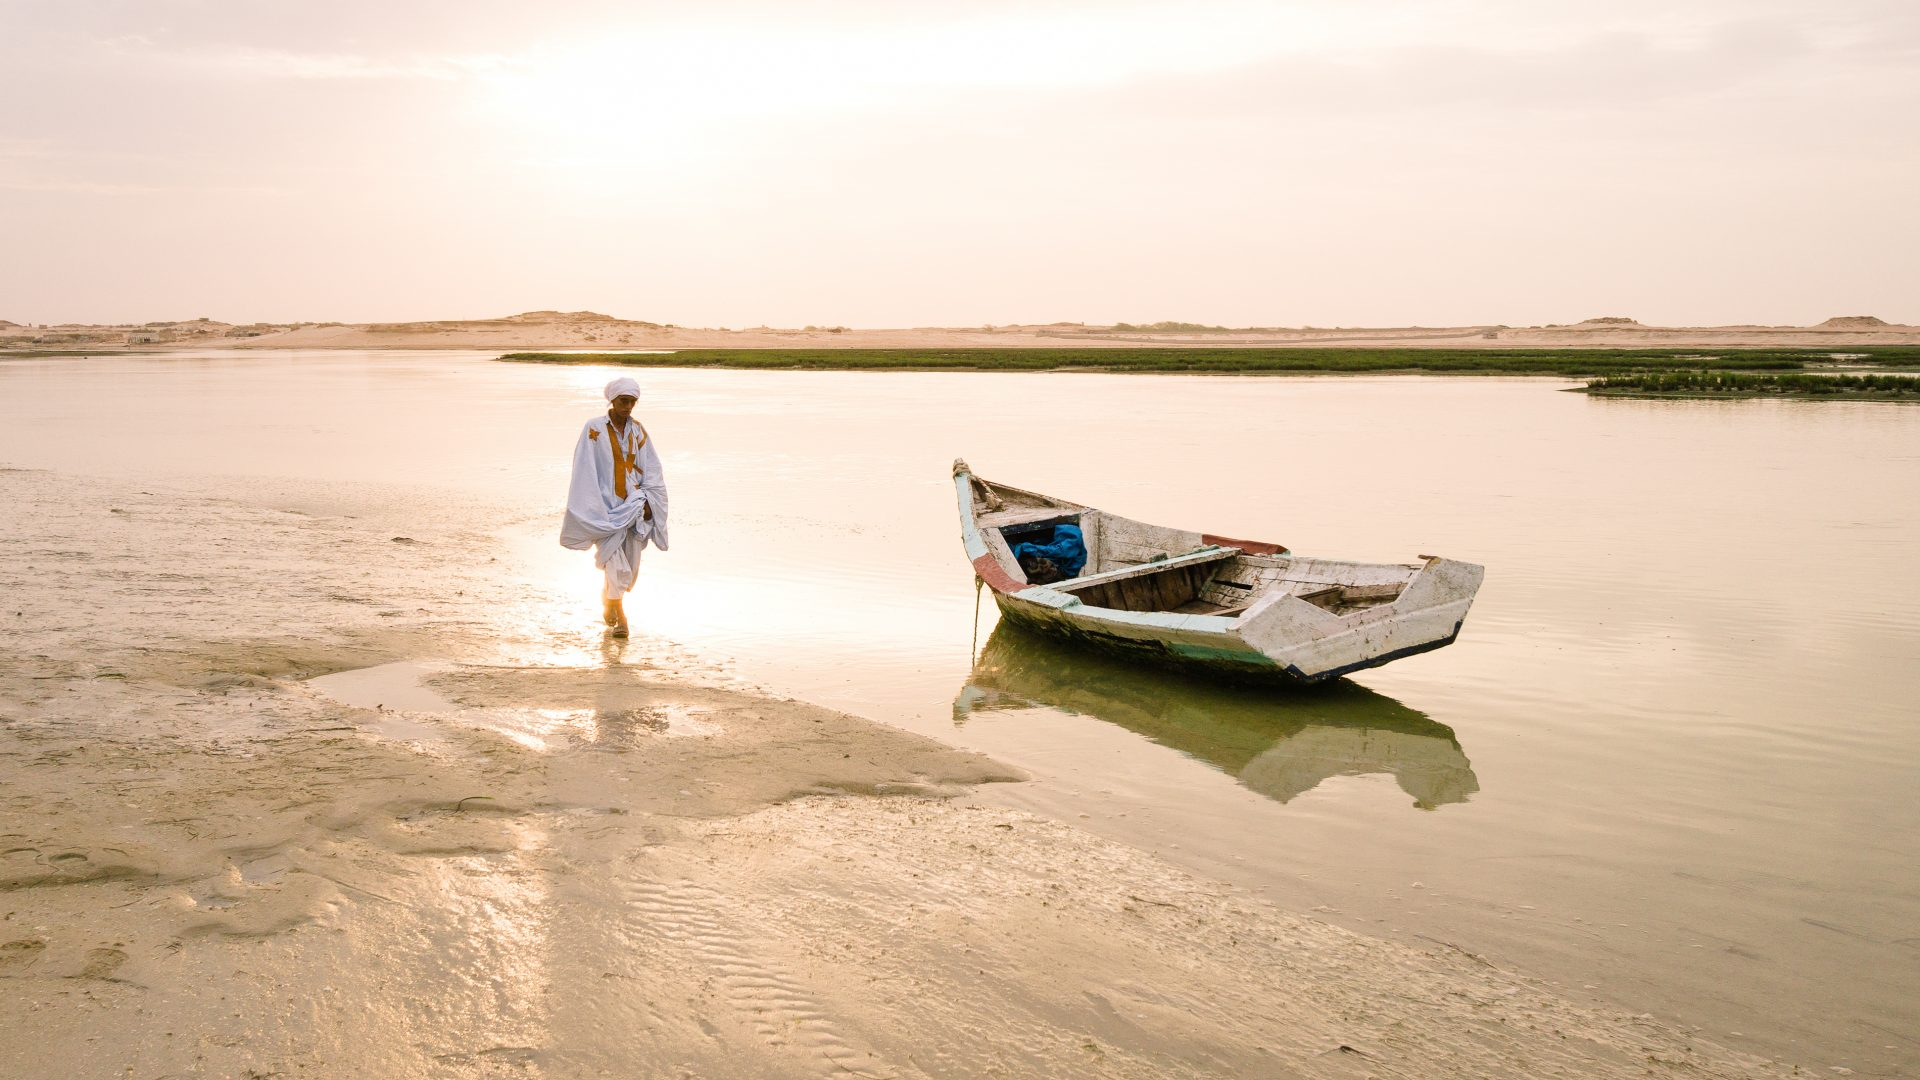 An Mauritania man walks near his boat at low tide just outside the town of Nouadhibou. The sandstorms coming off the Sahara desert leave the sky a surreal orange color.